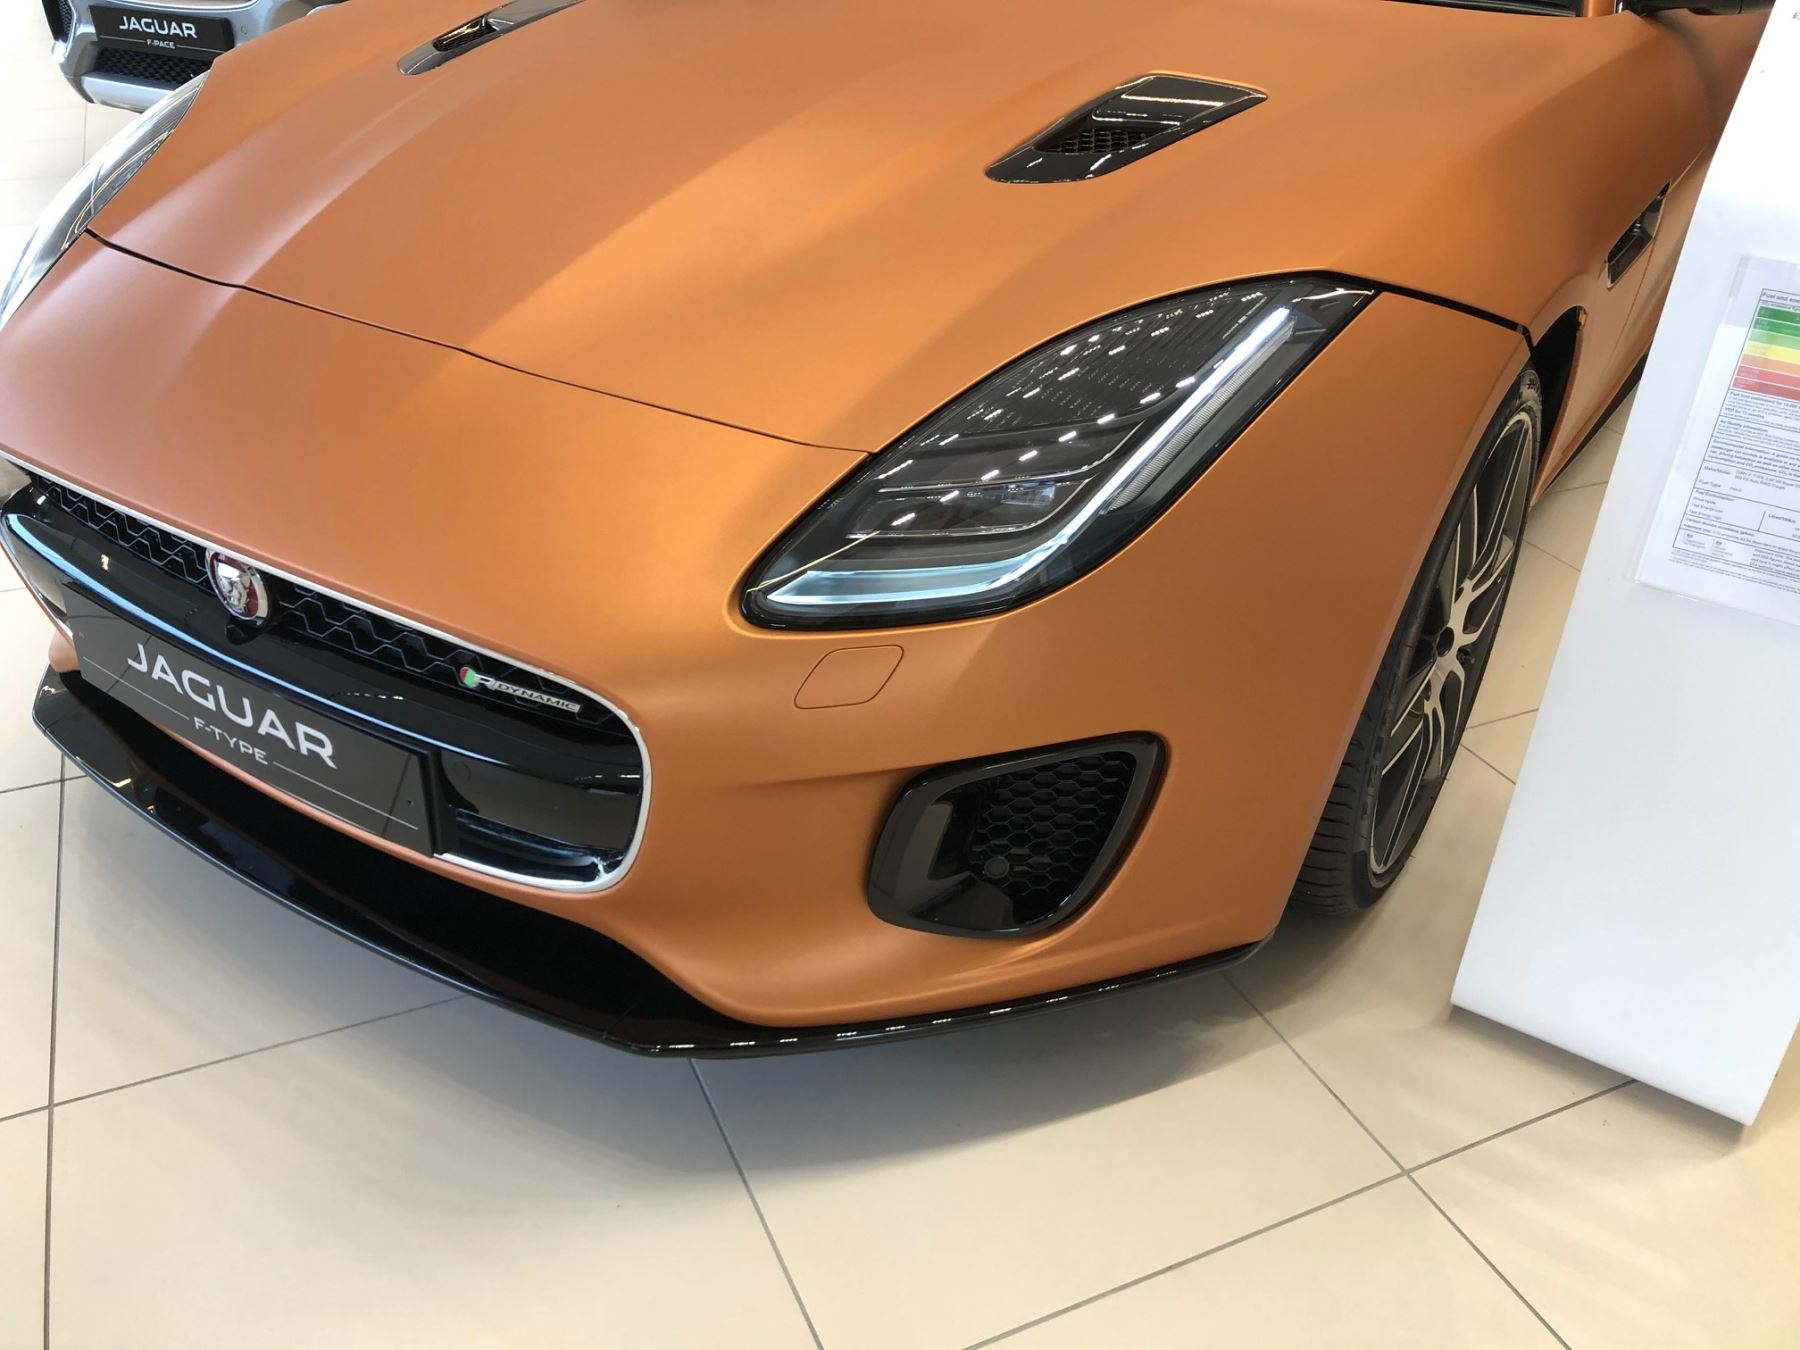 Jaguar F-TYPE 3.0 380 Supercharged V6 R-Dynamic AWD image 7